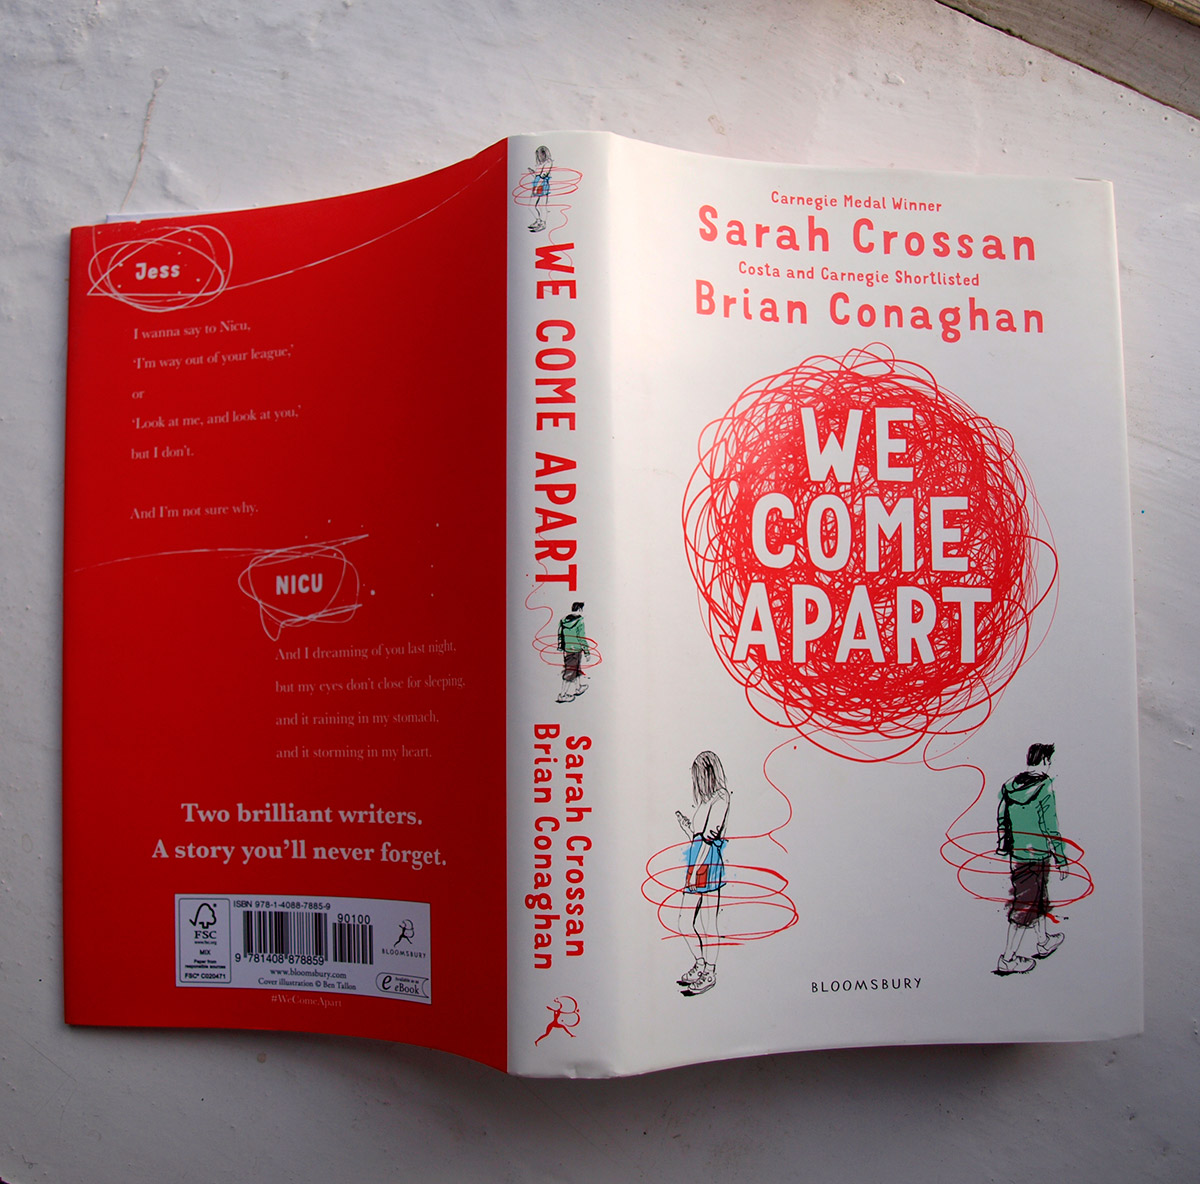 book cover illustration for Bloomsbury, We come Apart by Sarah Crossan and Brian Conaghan, hand drawing, pen and ink on paper, line drawing, people drawing book art, editorial publishing design